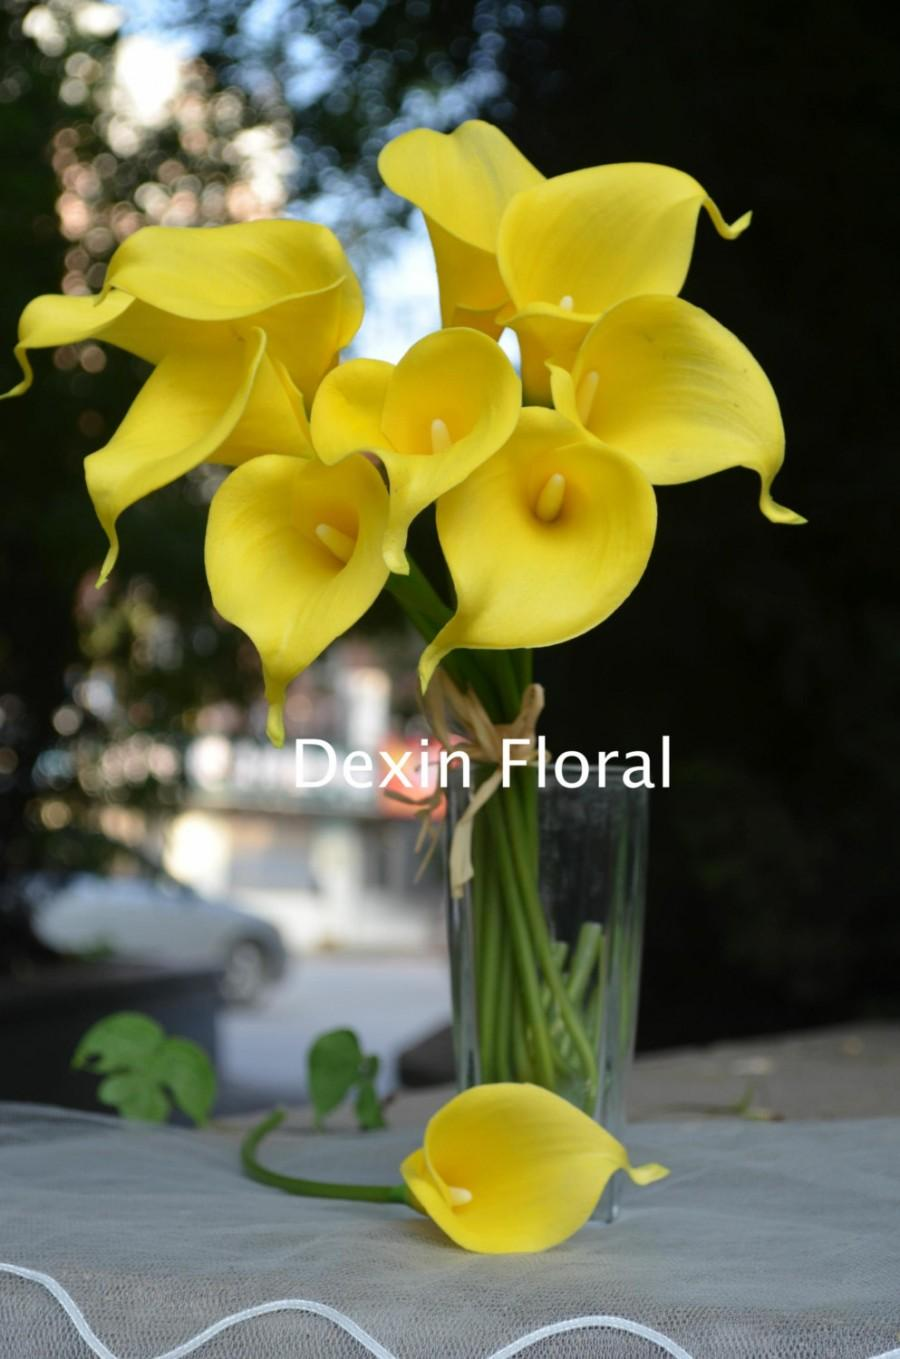 Hochzeit - 9 stems Yellow Calla Lily Real Touch Flowers for Wedding Bridal Bouquets, Centerpieces, Decorations